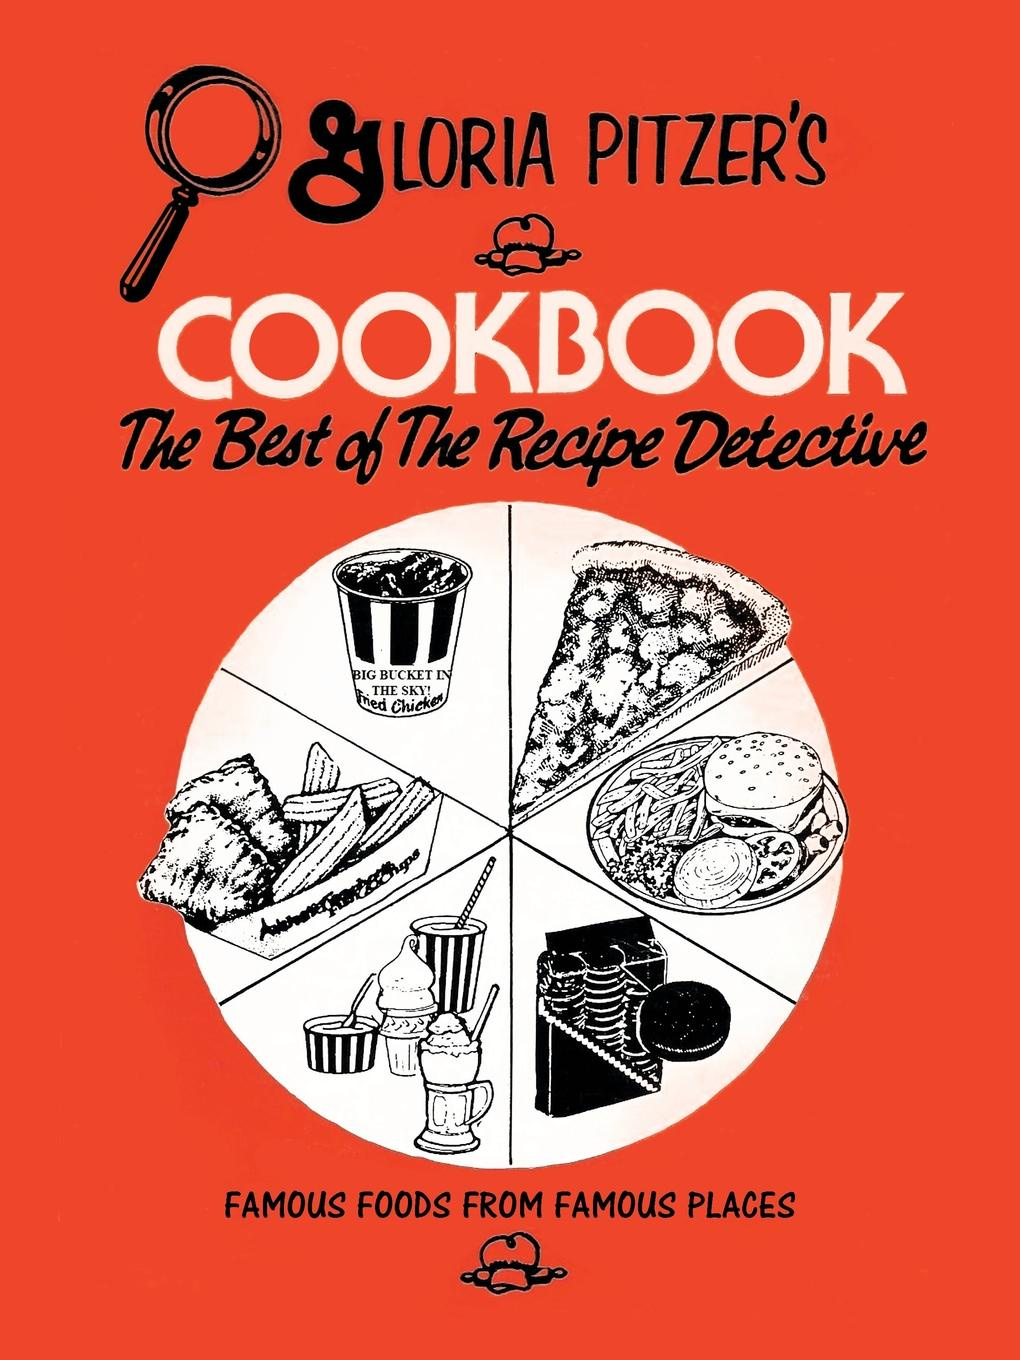 Gloria Pitzer Gloria Pitzer.s Cookbook - The Best of the Recipe Detective. Famous Foods From Famous Places mccance and widdowson s the composition of foods